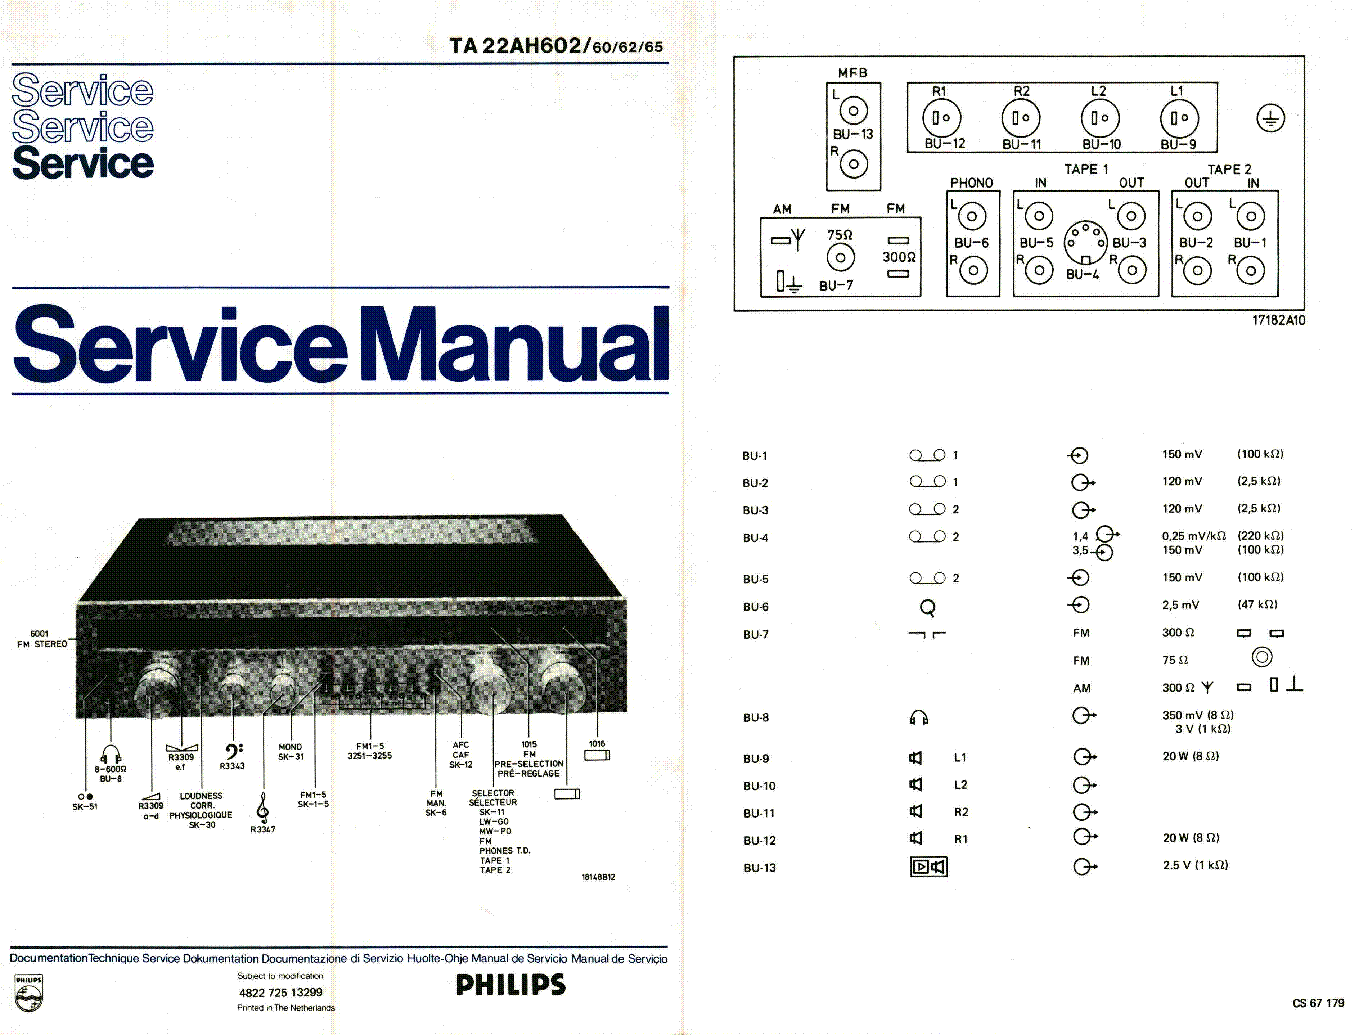 PHILIPS MCM704D Service Manual free download, schematics